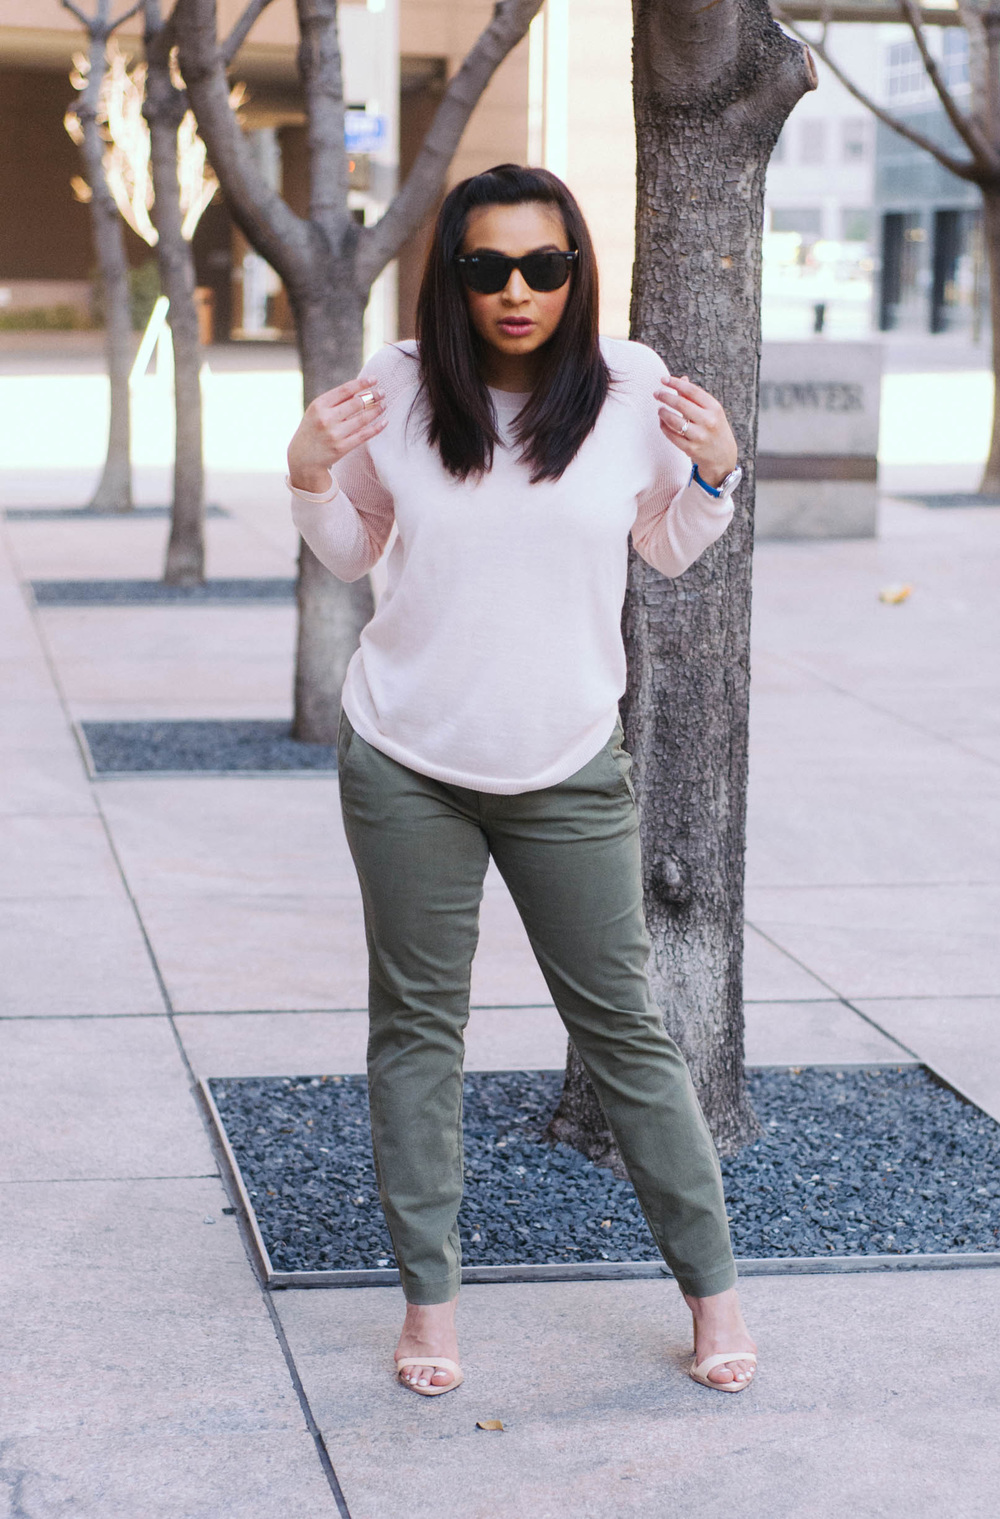 Sweater: J.Crew ( lots of color options! ) | Pants:  J.Crew  | Shoes: Zara (similar  here ) | Earrings:  Kate Spade  | Sunglasses:  RayBan  | Nail Polish: O.P.I.